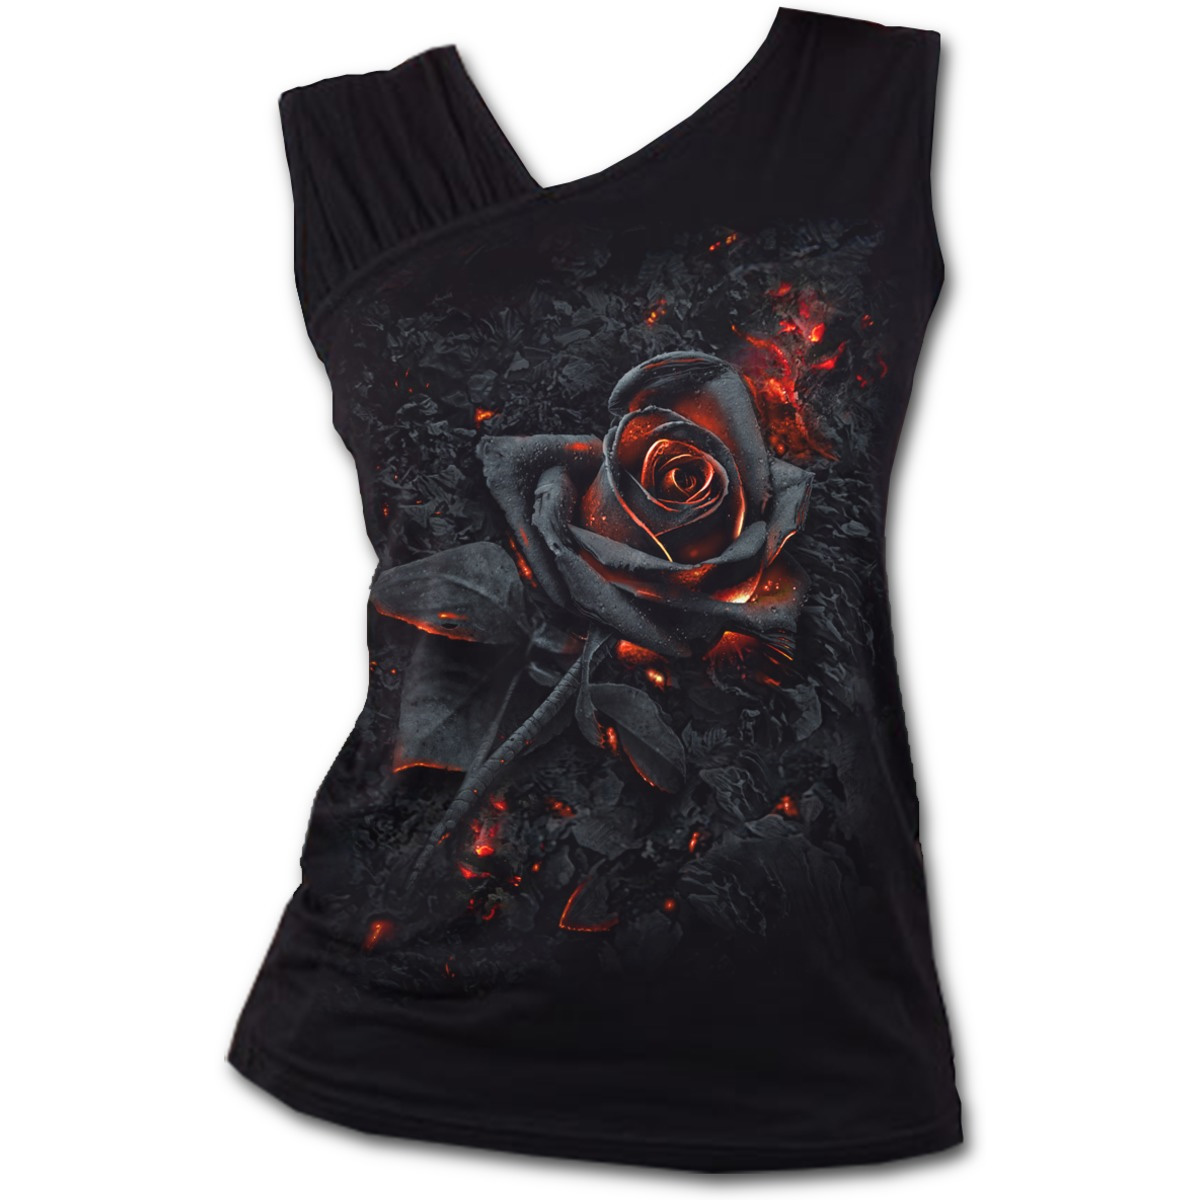 SPIRAL-DIRECT-Ladies-Black-Goth-BURNT-ROSE-Fire-Slant-Vest-Top-All-Sizes thumbnail 9